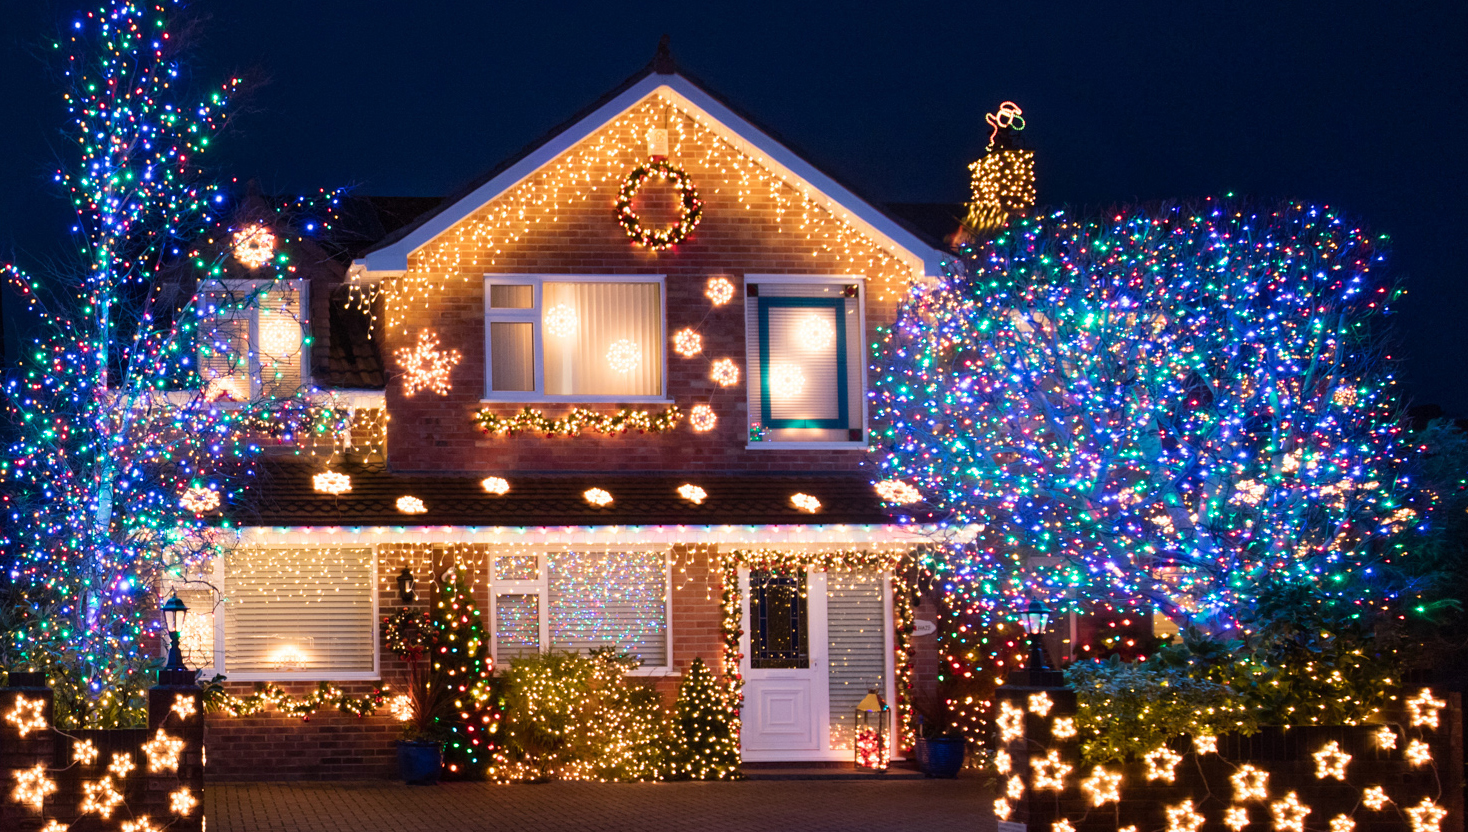 christmas outdoor lighting ideas. 17 outdoor christmas light decoration ideas outside lights display pictures lighting r